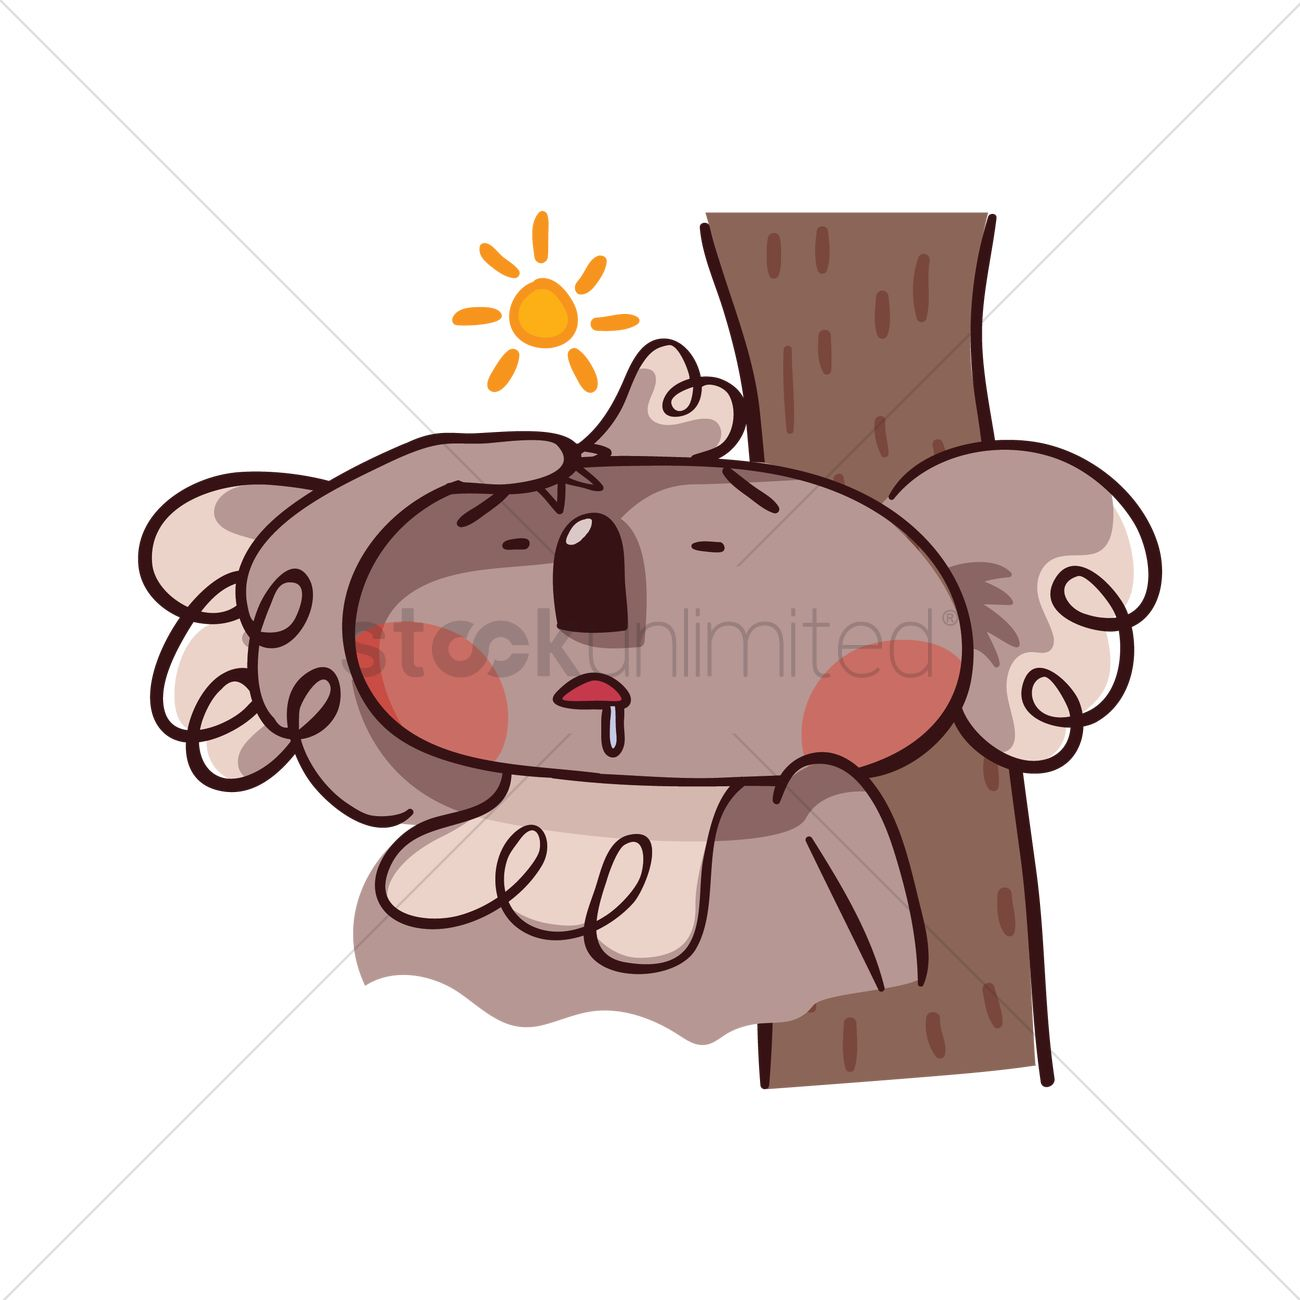 Cartoon Koala Bear Feeling Hot Vector Image 1957131 Stockunlimited Hugging a pillow that heart sign on it, celebrating valentine`s day. cartoon koala bear feeling hot vector